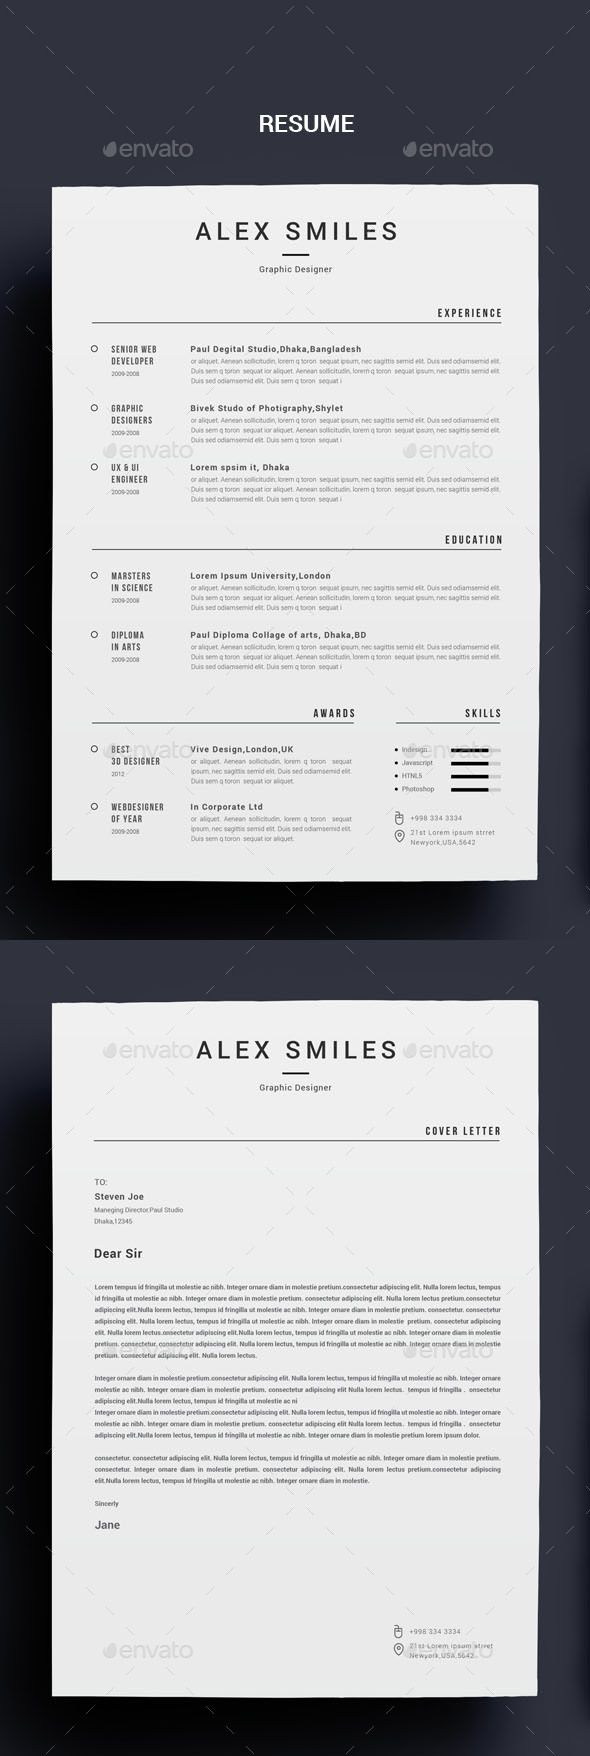 Resume — Photoshop PSD #creative resume/cv #professional resume/cv • Download ➝ https://graphicriver.net/item/resume/18942362?ref=pxcr